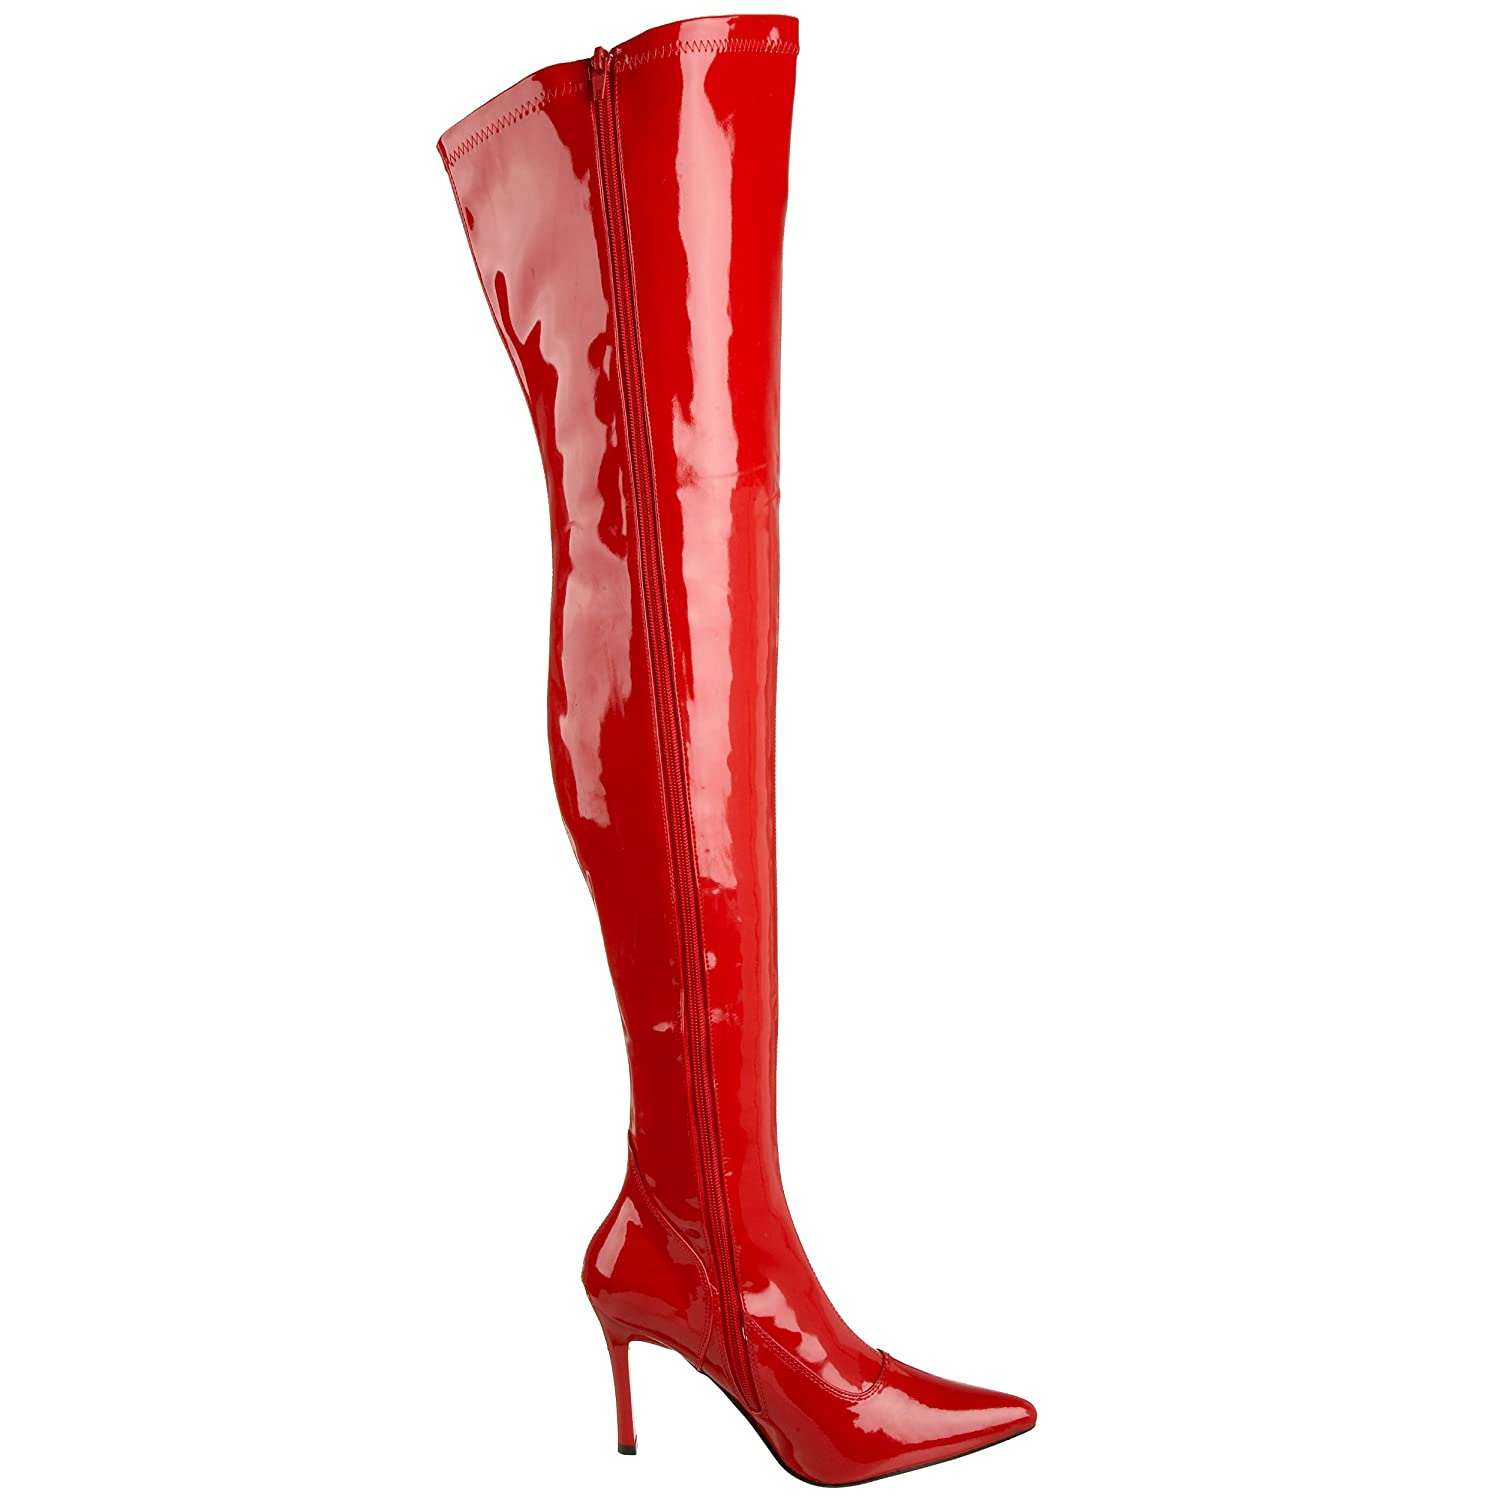 Funtasma 6 by Pleaser Women's Lust-3000 Boot B0018NG4PI 6 Funtasma B(M) US|Red Str Patent 10874b